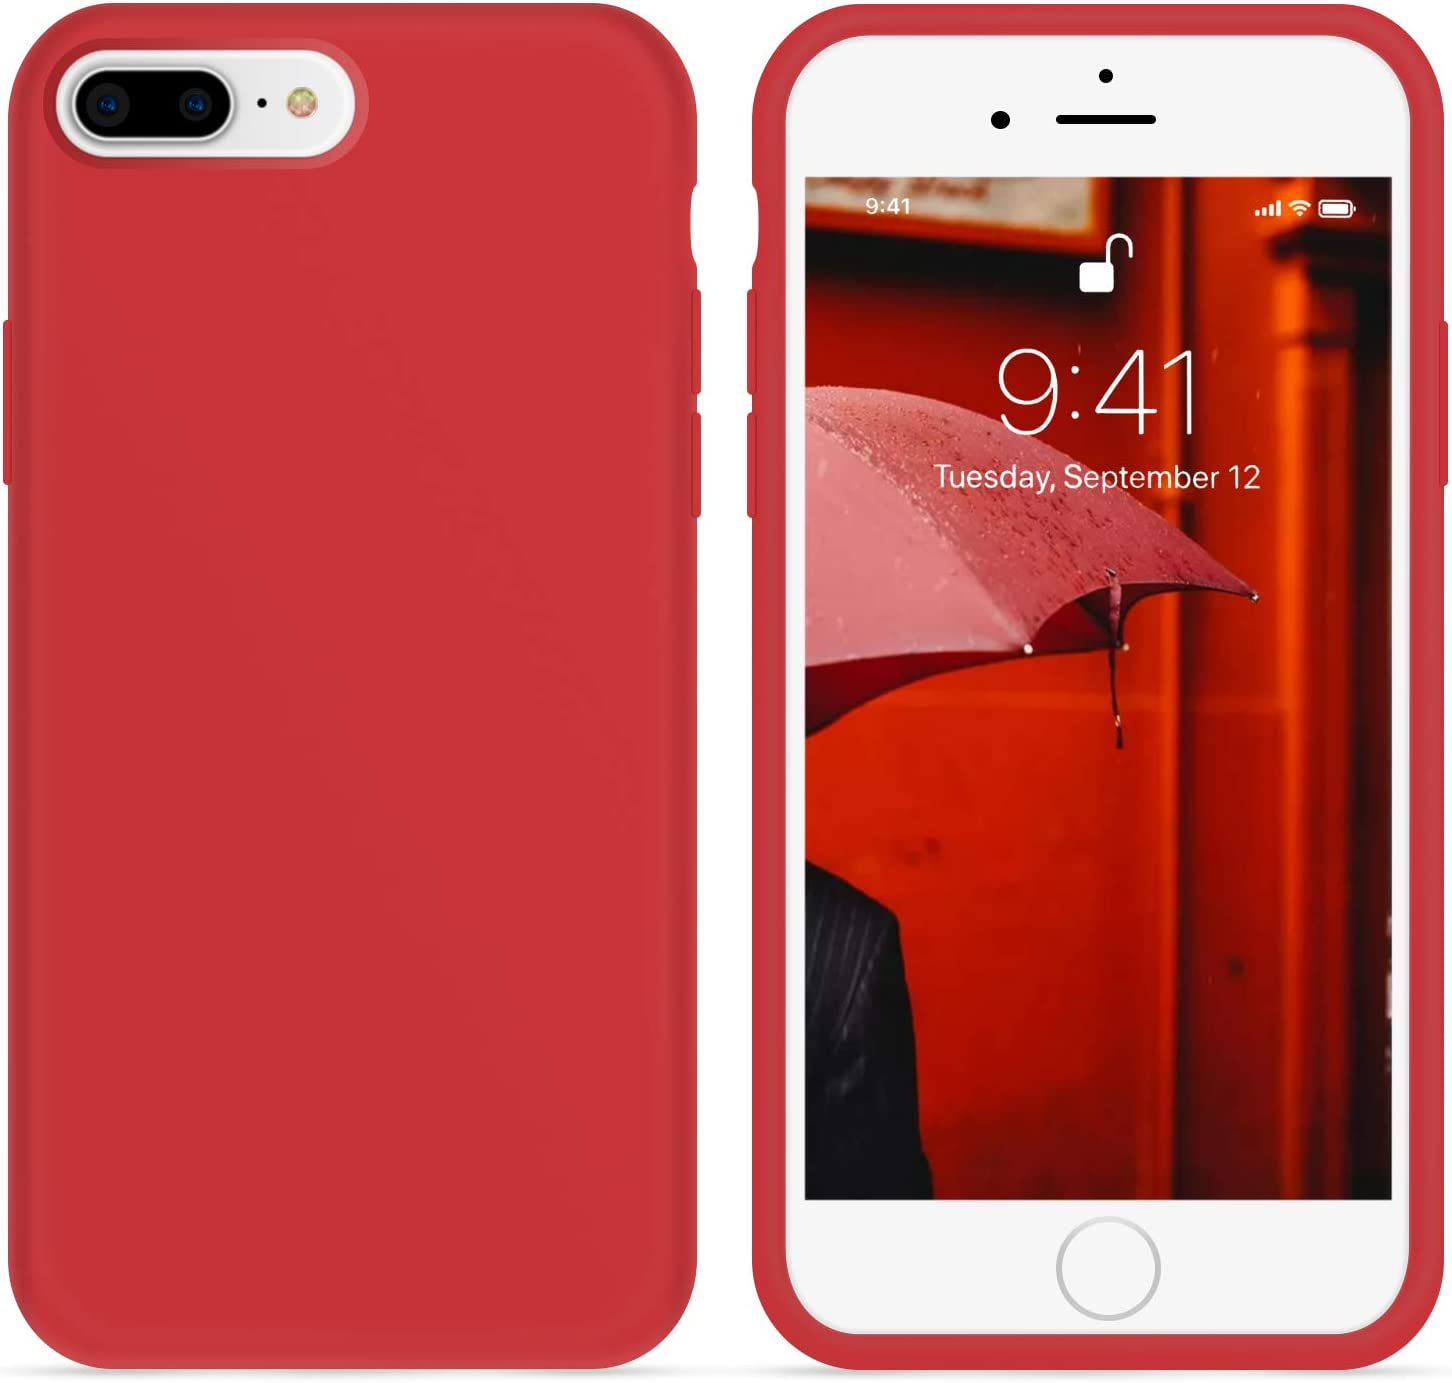 OTOFLY iPhone 8 Plus Case,iPhone 7 Plus Case,[Silky and Soft Touch Series] Premium Soft Silicone Rubber Full-Body Protective Bumper Case Compatible with iPhone 7/8 Plus (Red)